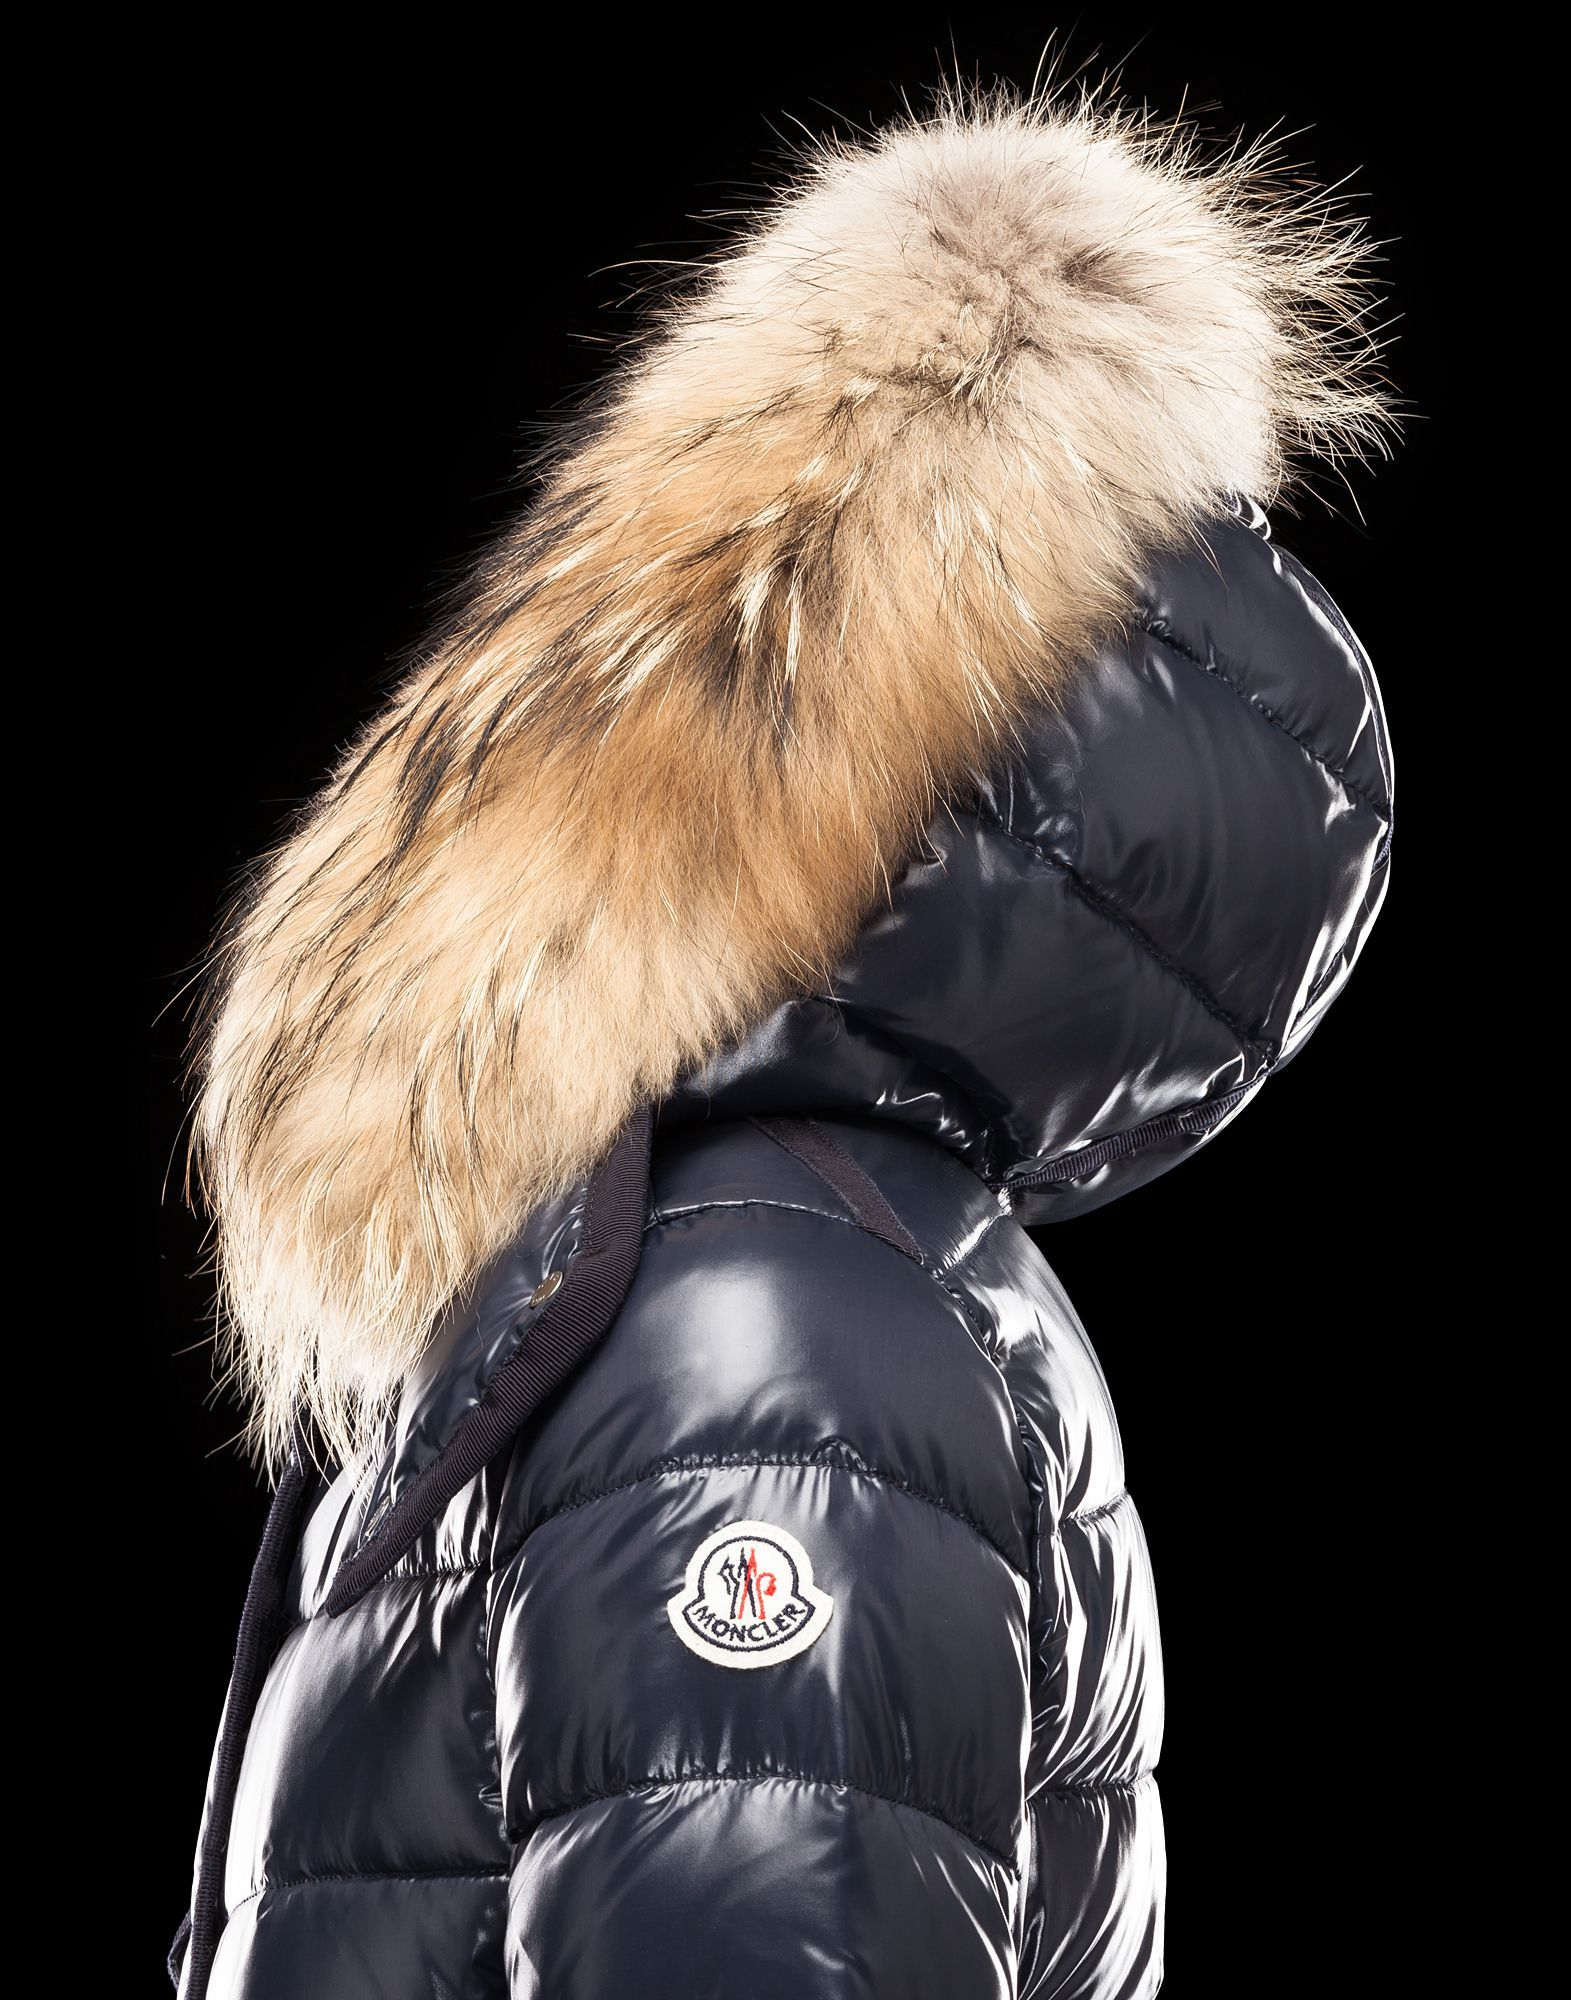 @Moncler #ARMOISE lacquered nylon, the classic Moncler fabric. Slim fit. Hood with detachable real fur. Classy!